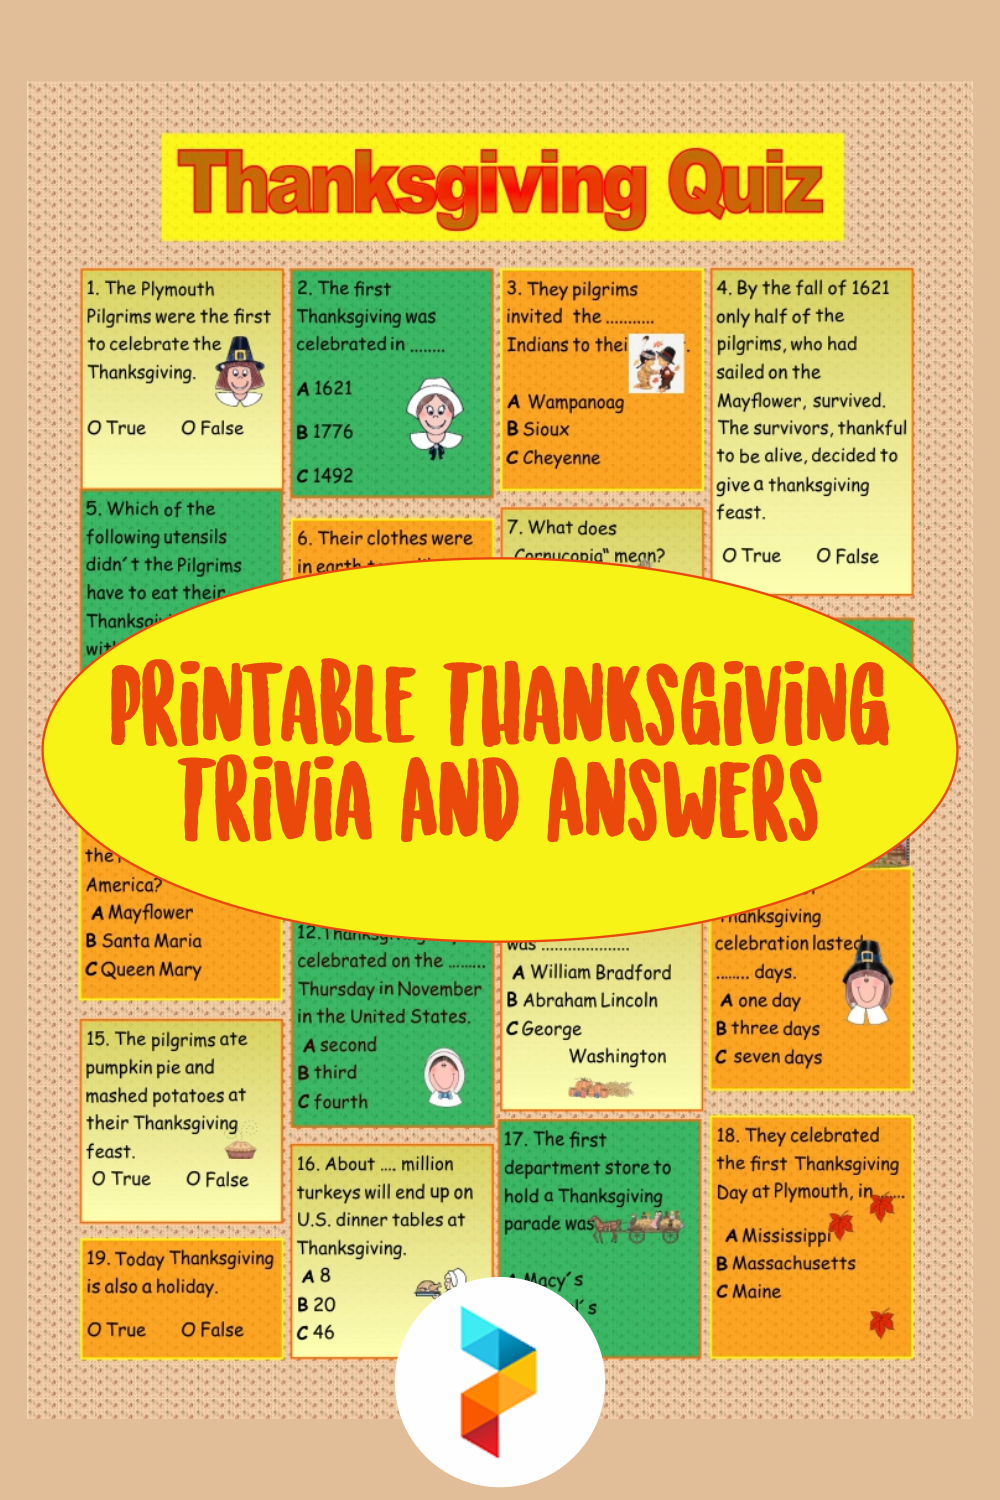 Printable Thanksgiving Trivia And Answers